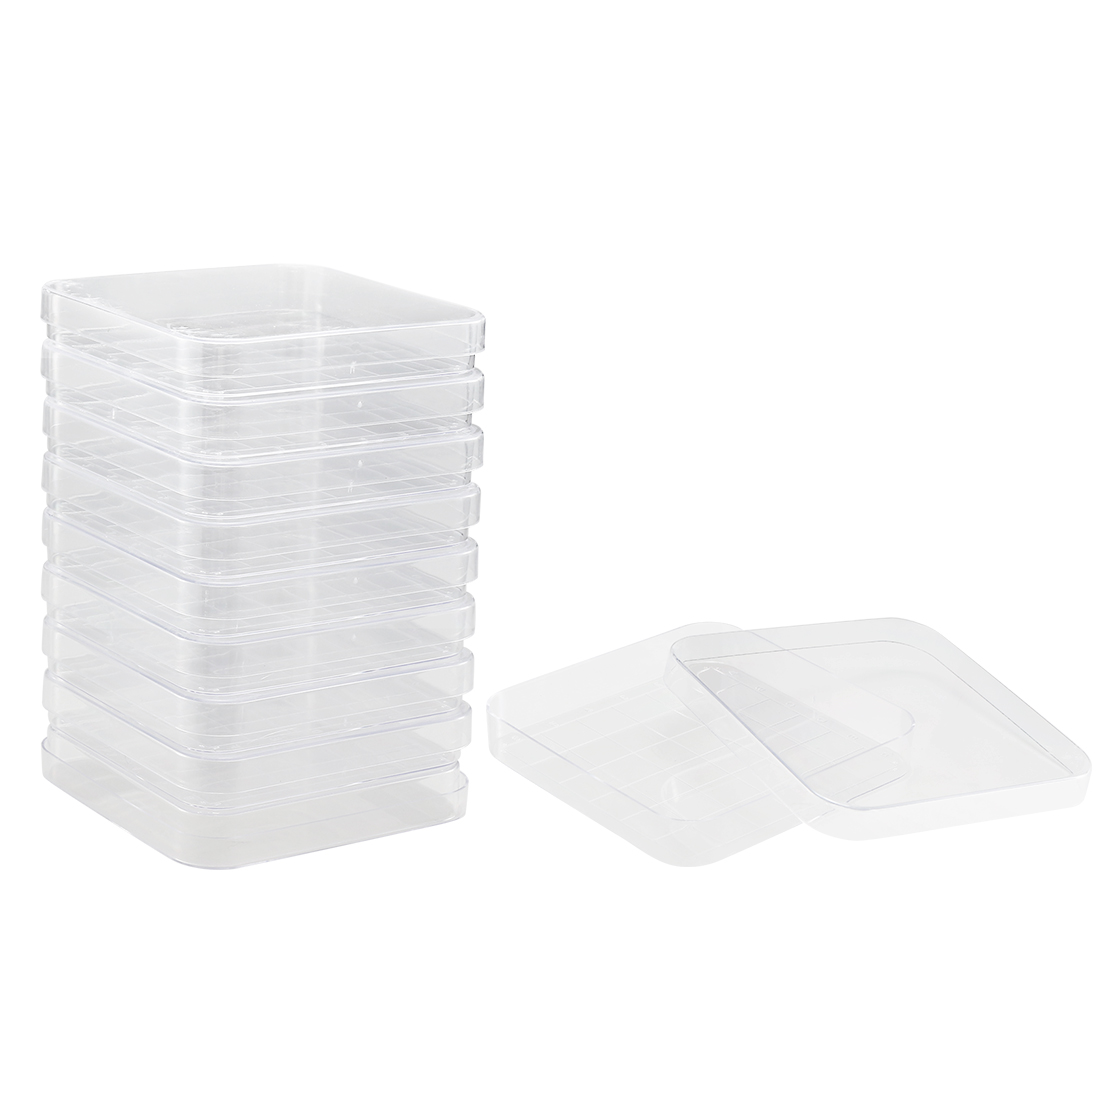 Plastic Square Integrid Petri Dish Plates, 100mm x 100mm, 17mm Height, 10 Pack